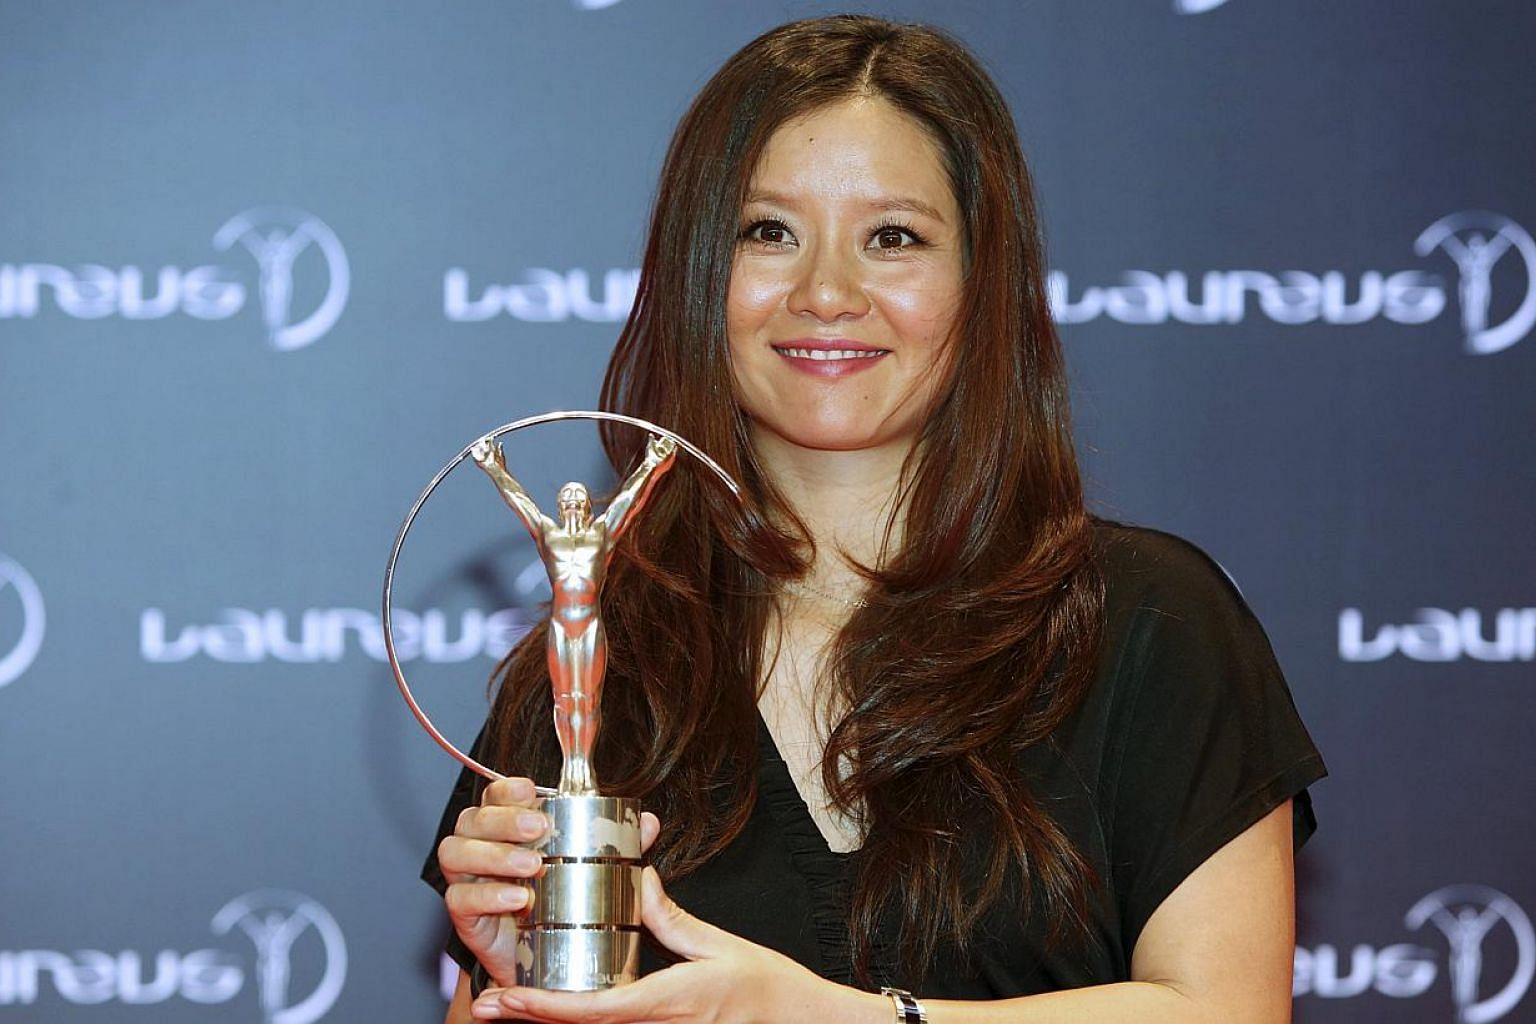 Former tennis player Li Na poses for photographs with her award at the 2015 Laureus World Sports Awards, in Shanghaion April 15, 2015. Retired Chinese tennis star Li Na announced on Wednesday, June 3, that she and her husband have a newborn dau